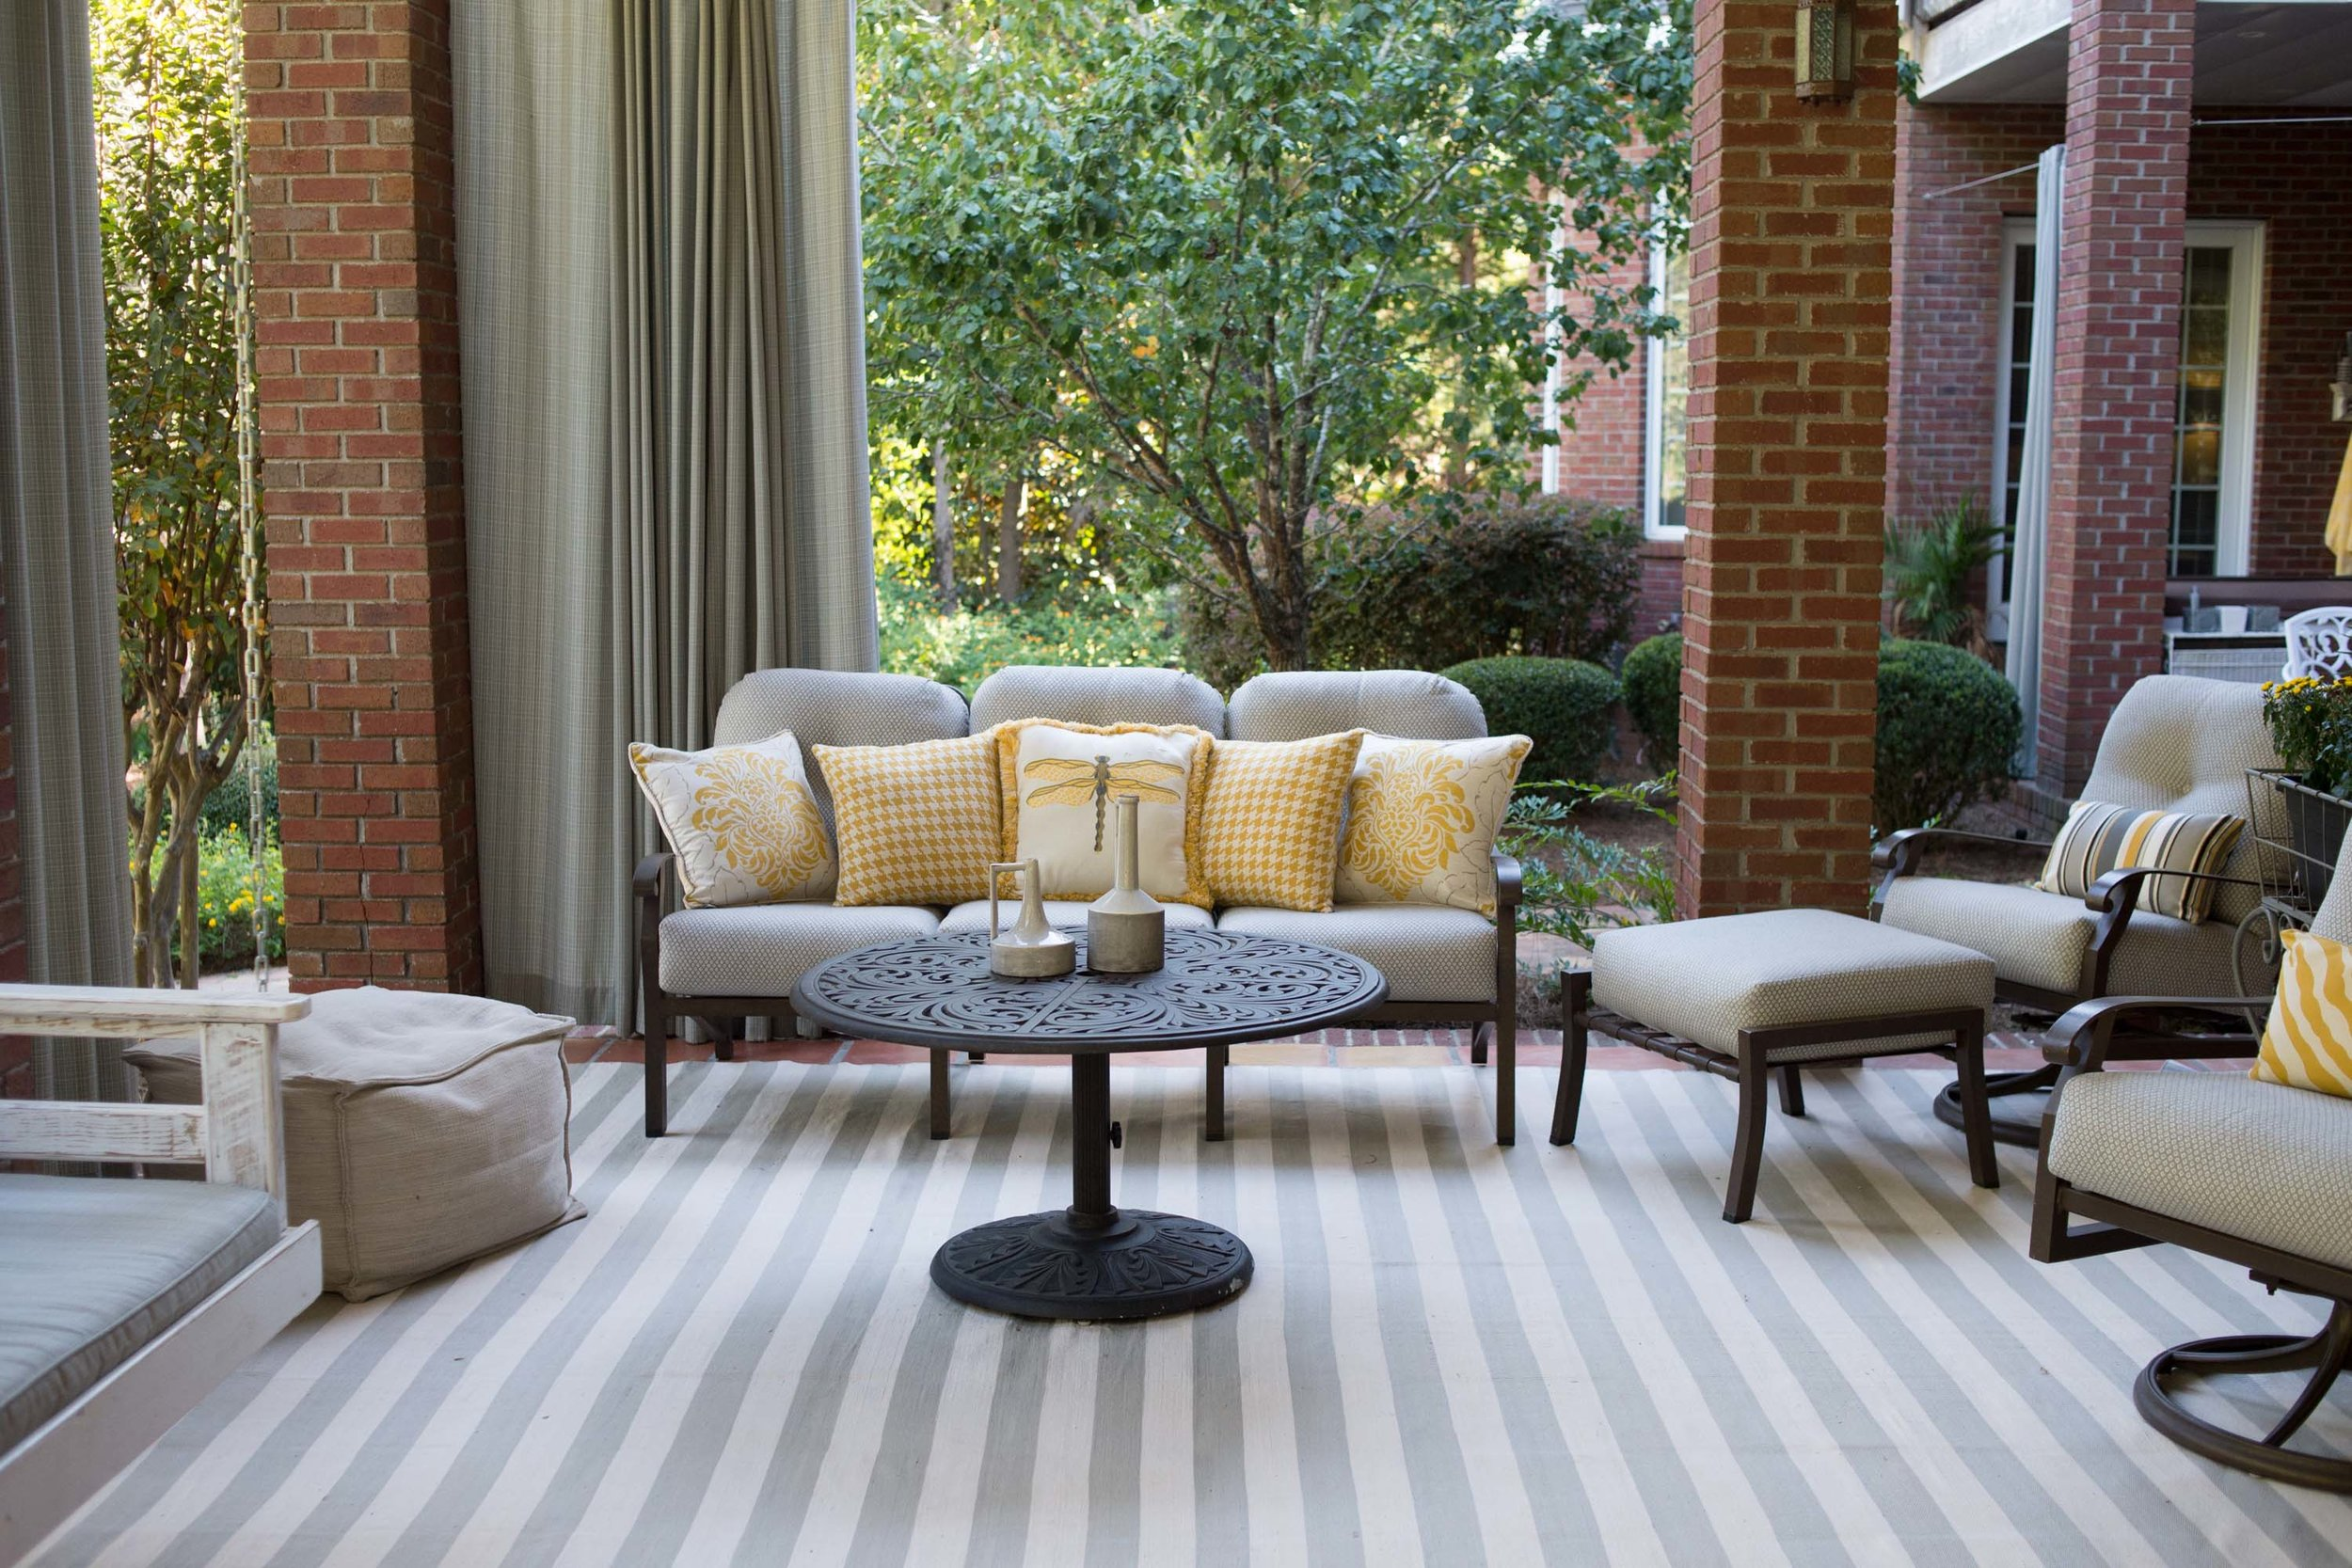 Outdoor patio with sofa, armchair and large striped carpet